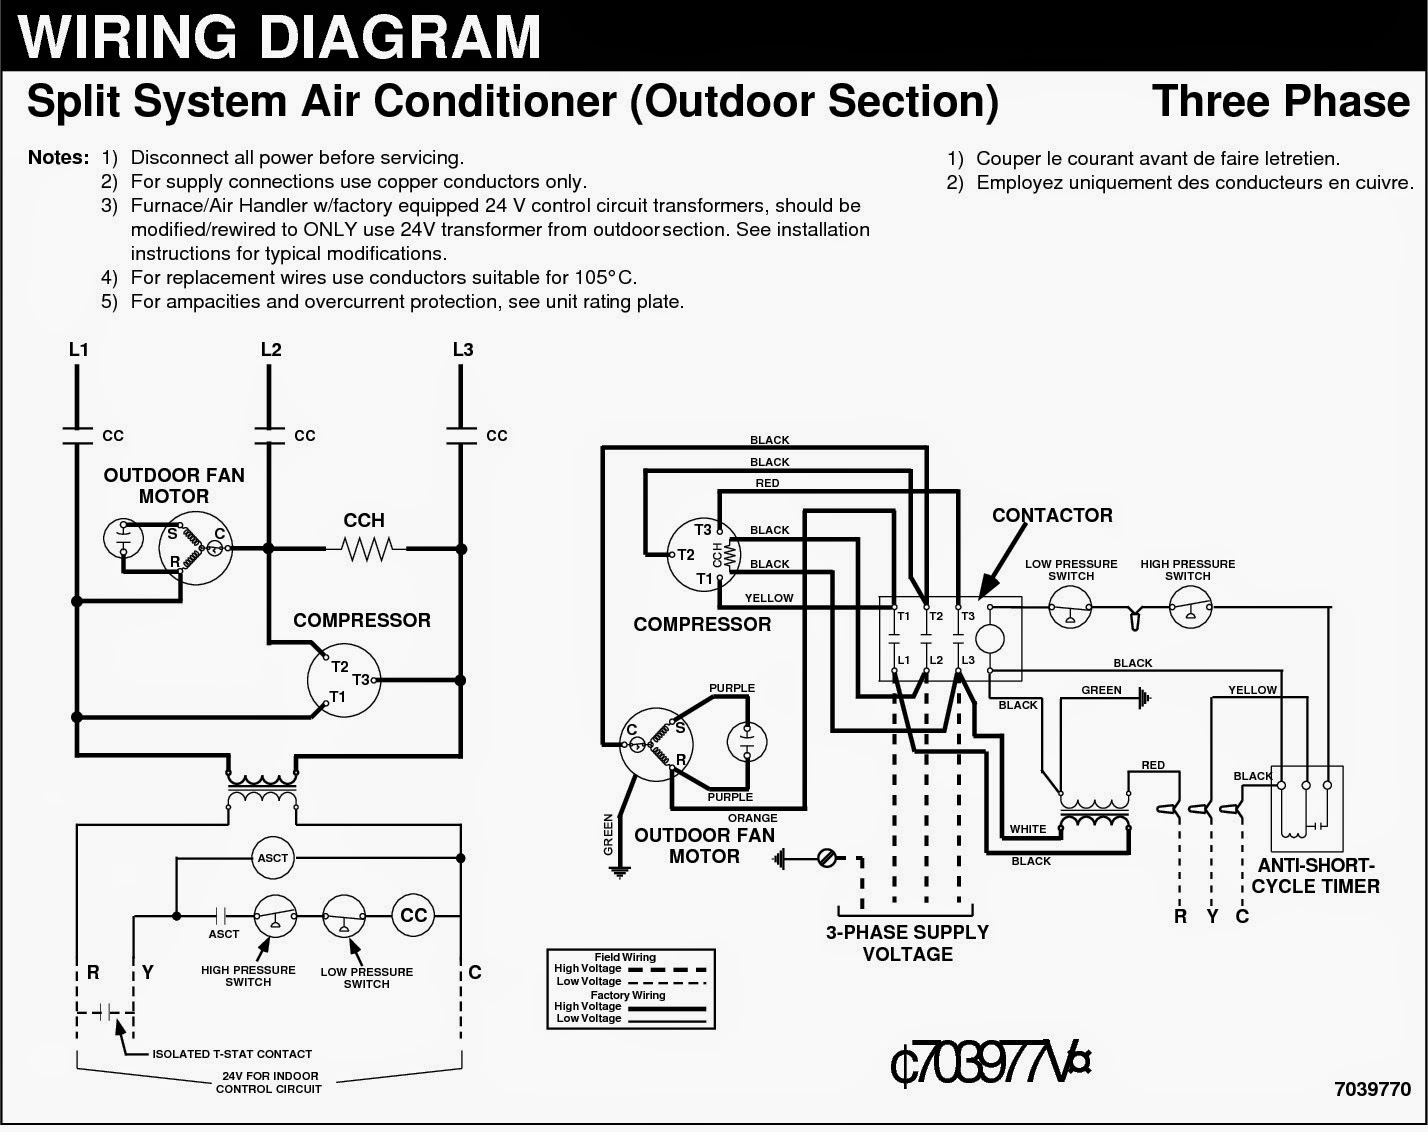 3+phase electrical wiring diagrams for air conditioning systems part two central ac wiring diagram at cos-gaming.co